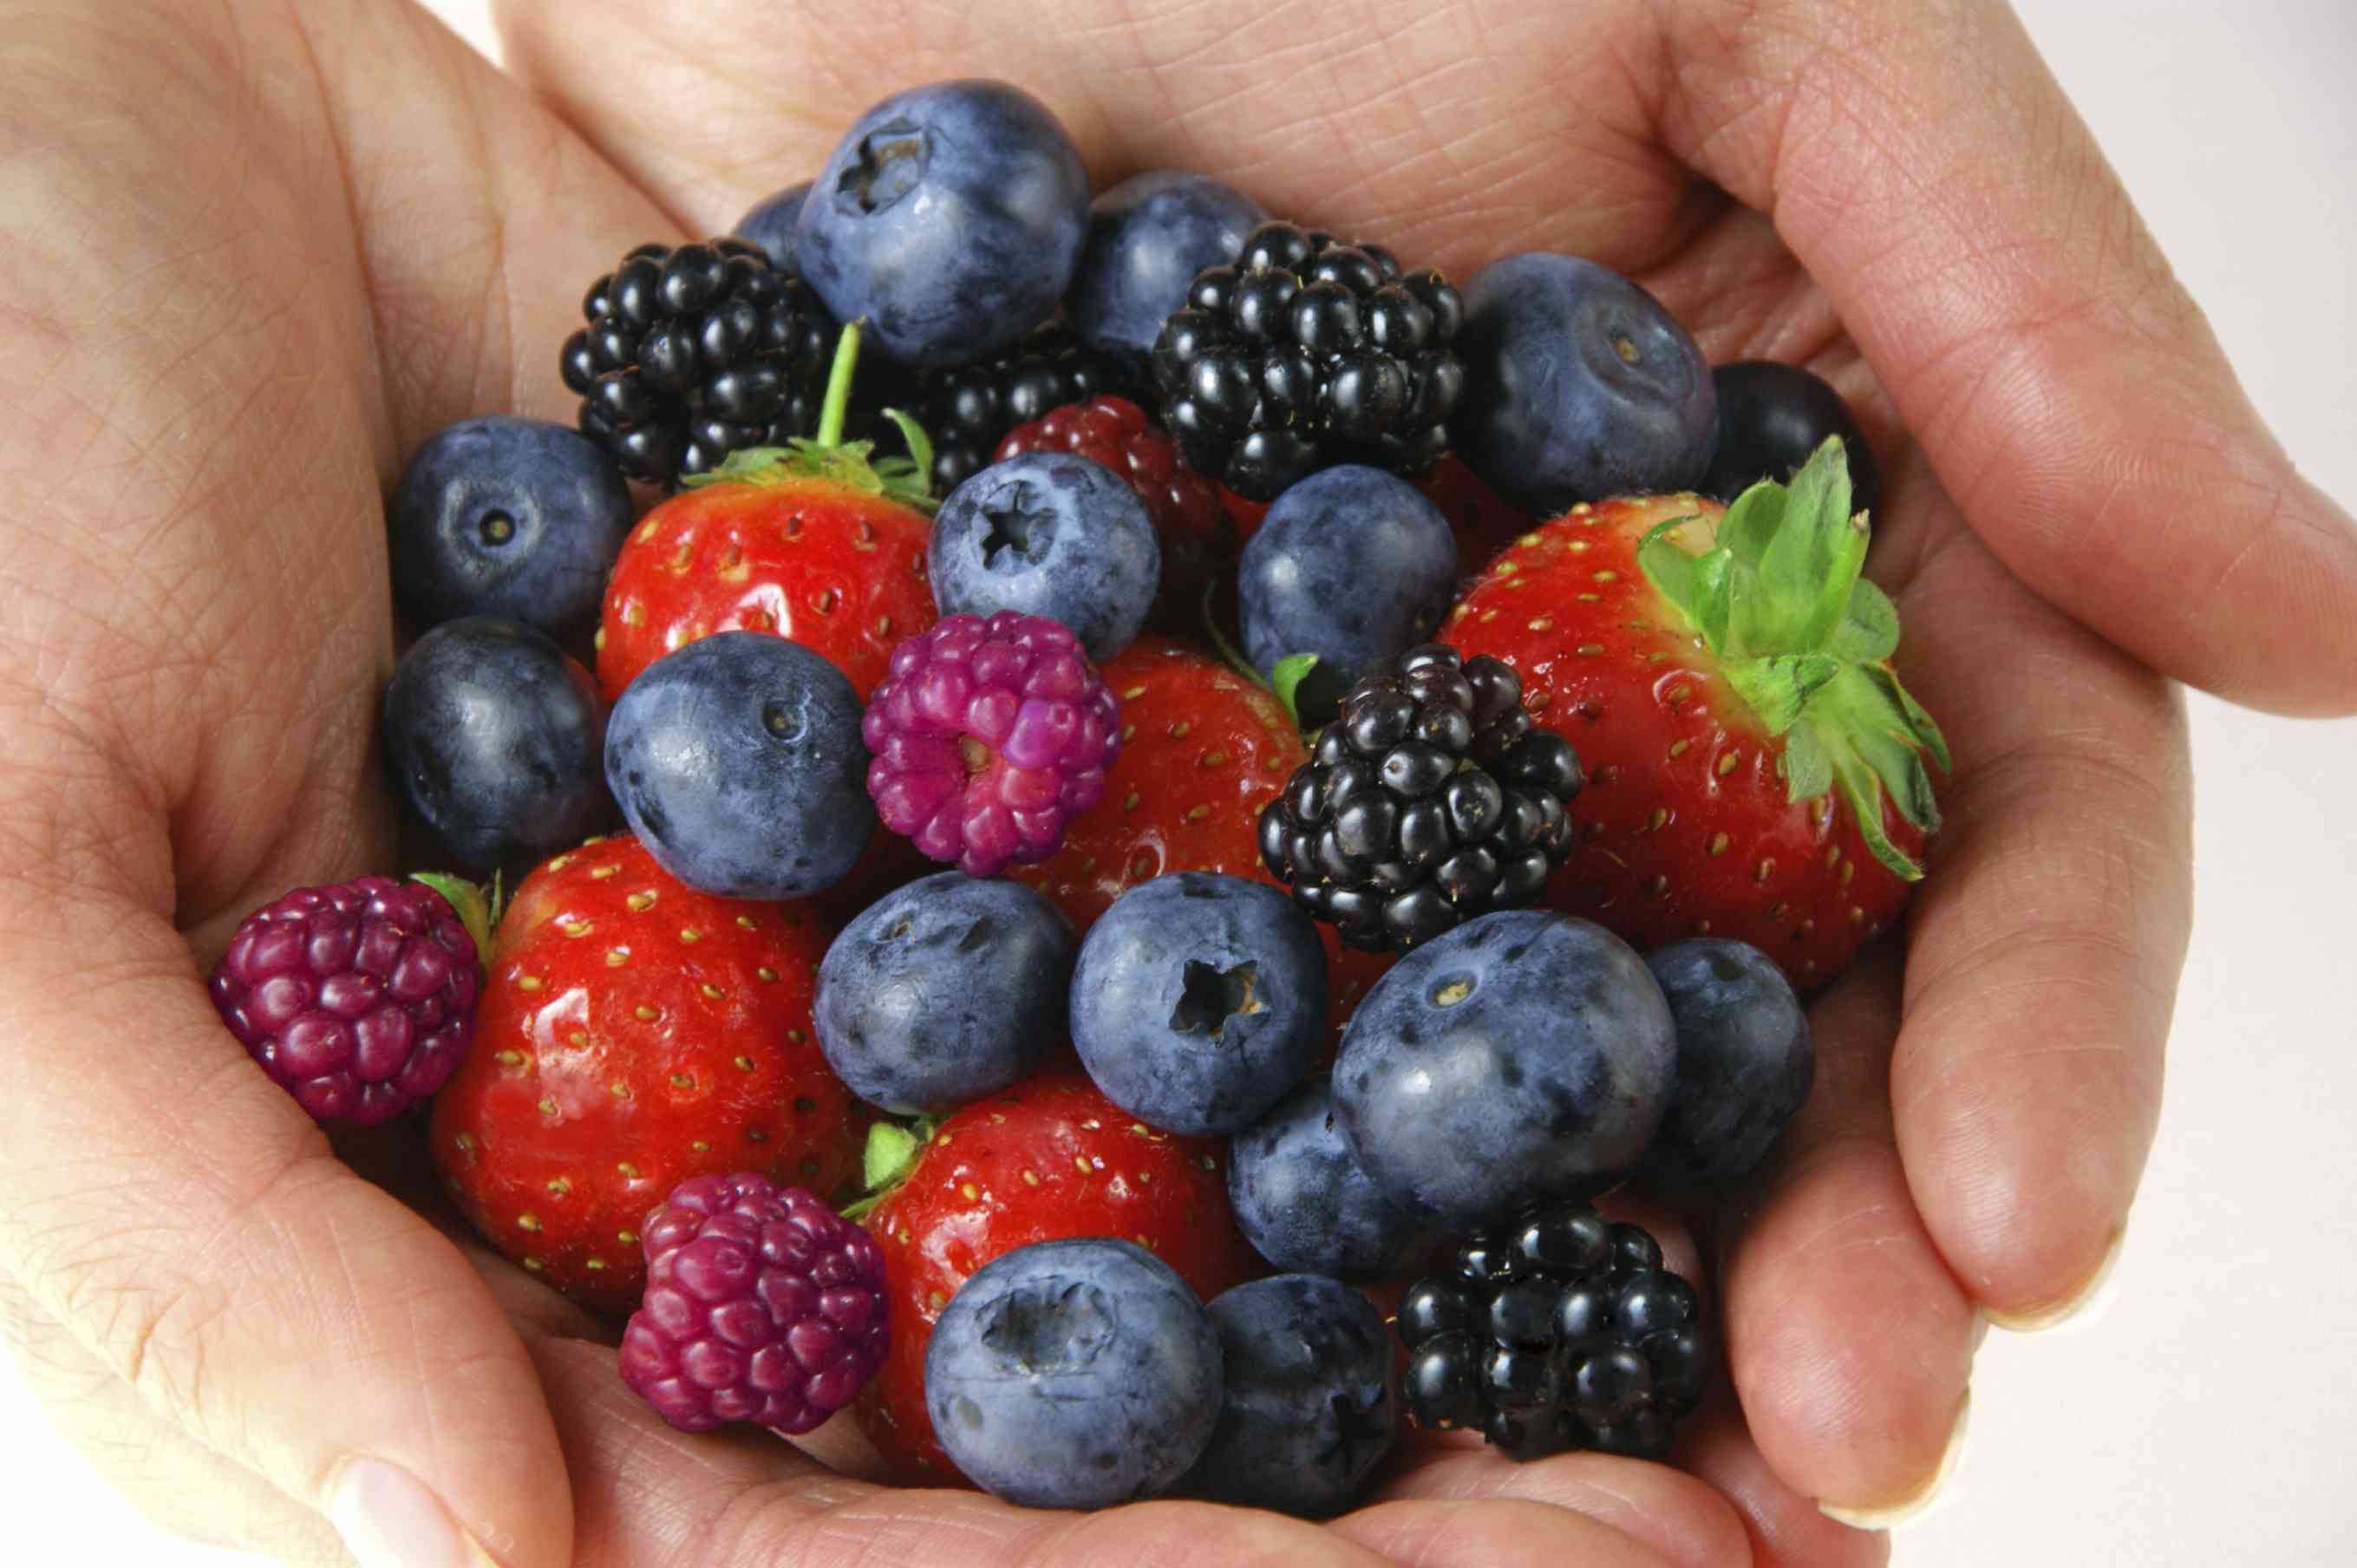 Many different berries held in hands